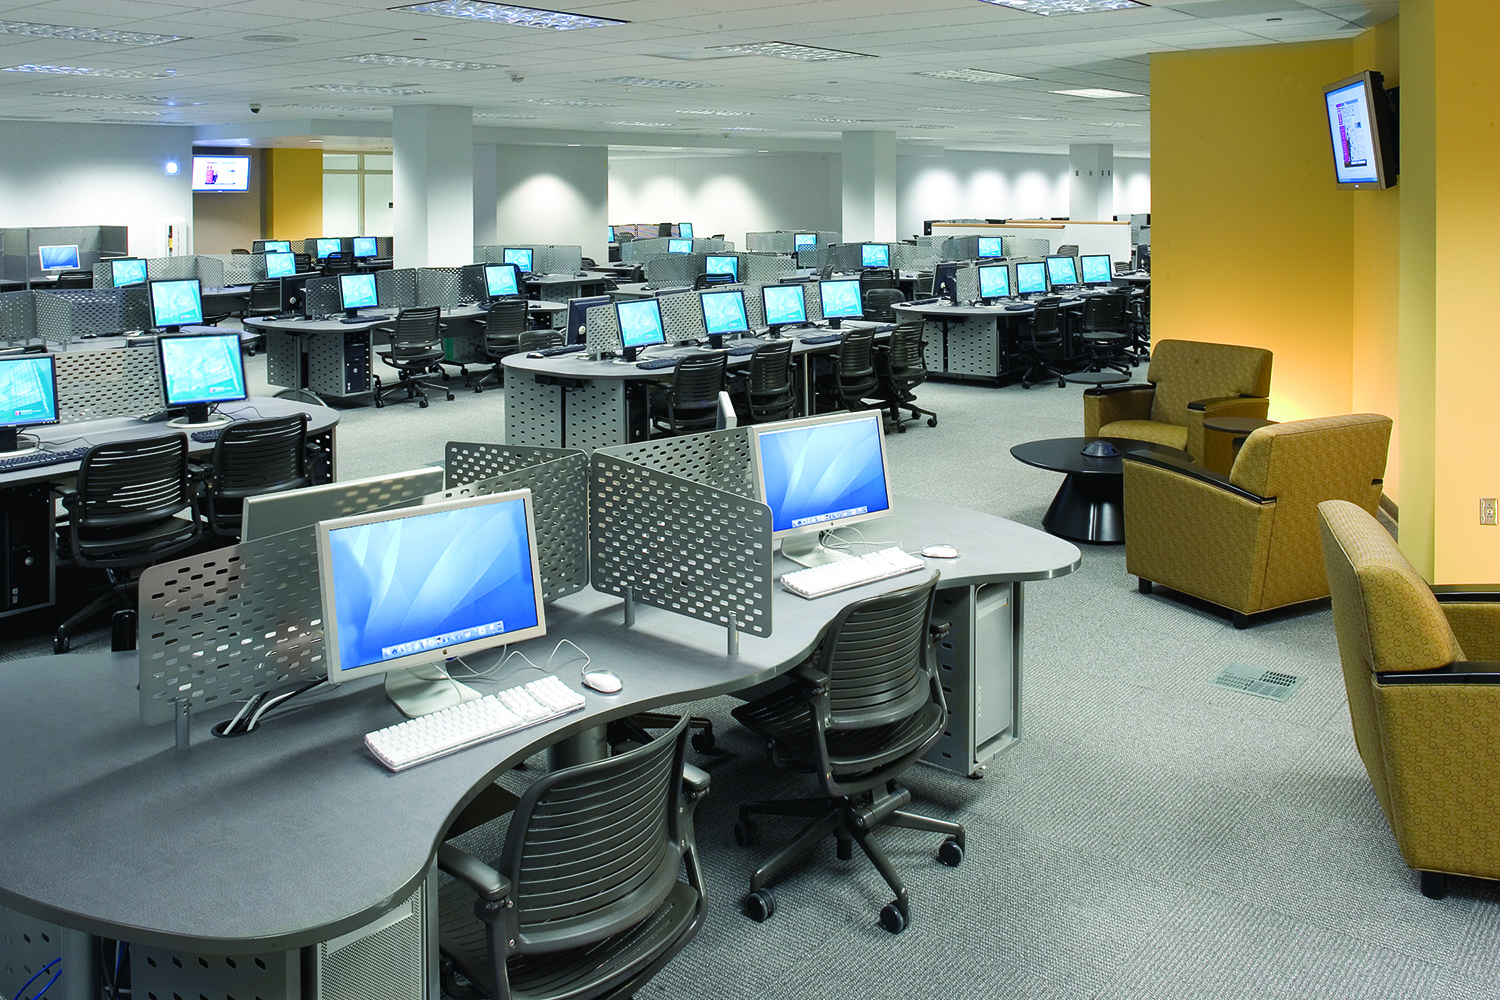 Picture of large compuer lab